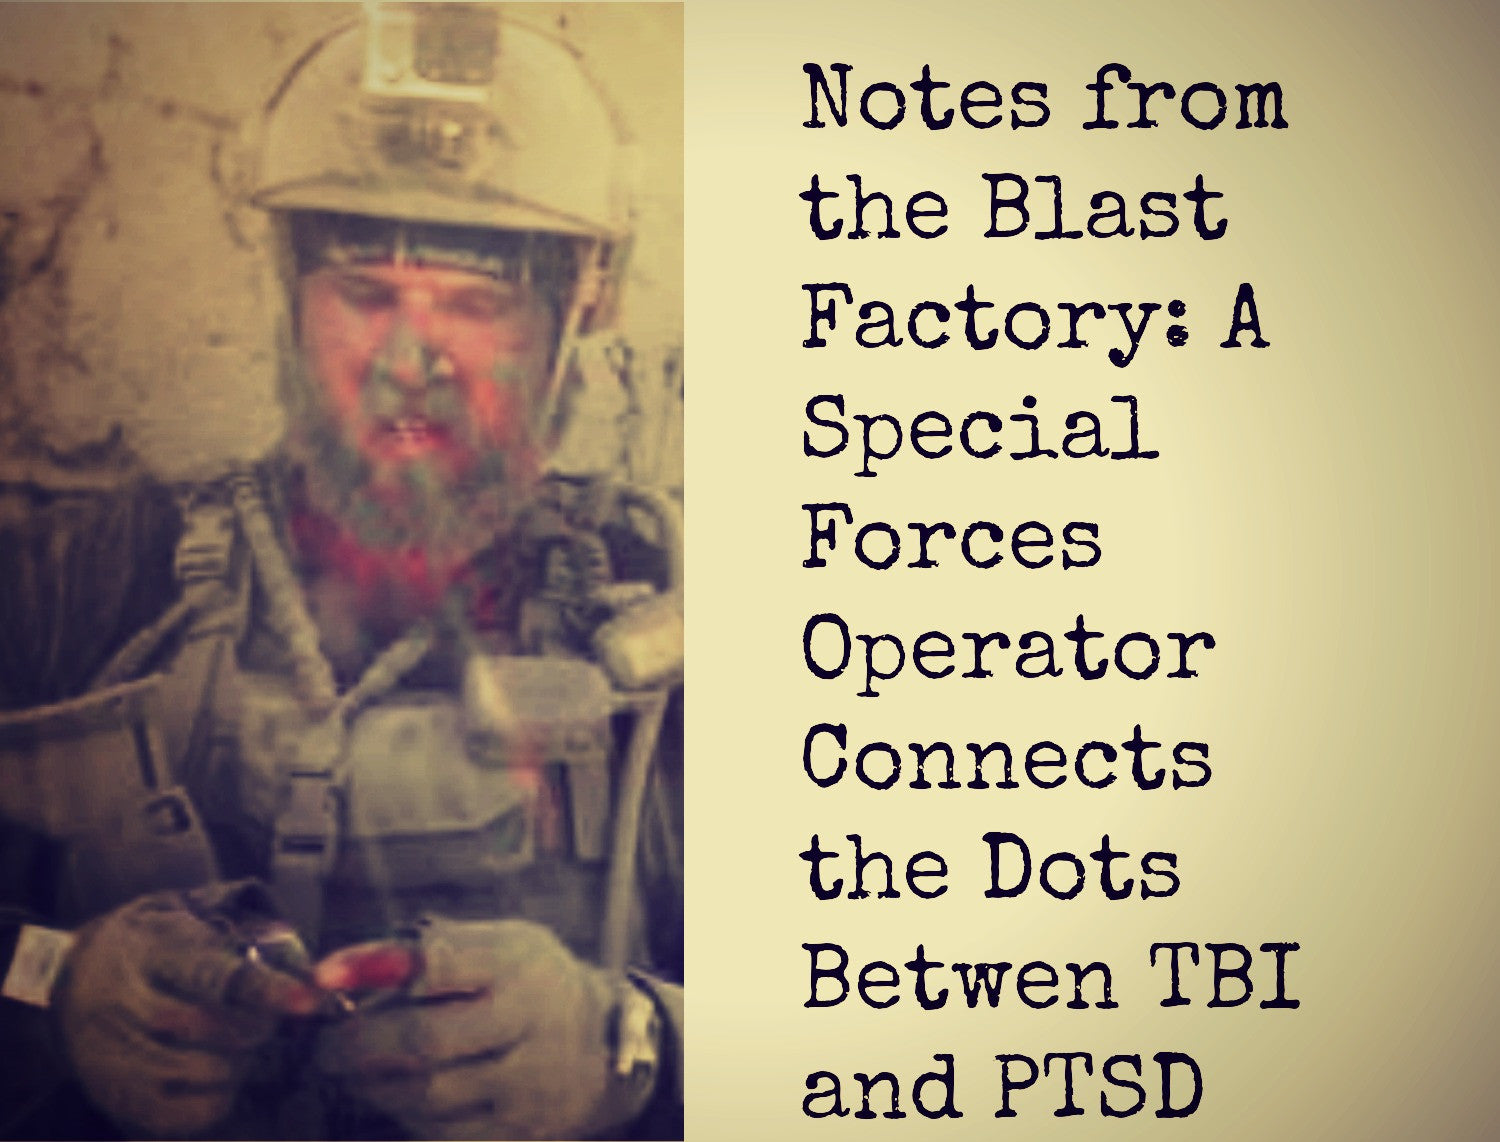 Notes from the Blast Factory: A Special Forces Operator Connects the Dots Between Traumatic Brain Injury and Post Traumatic Stress